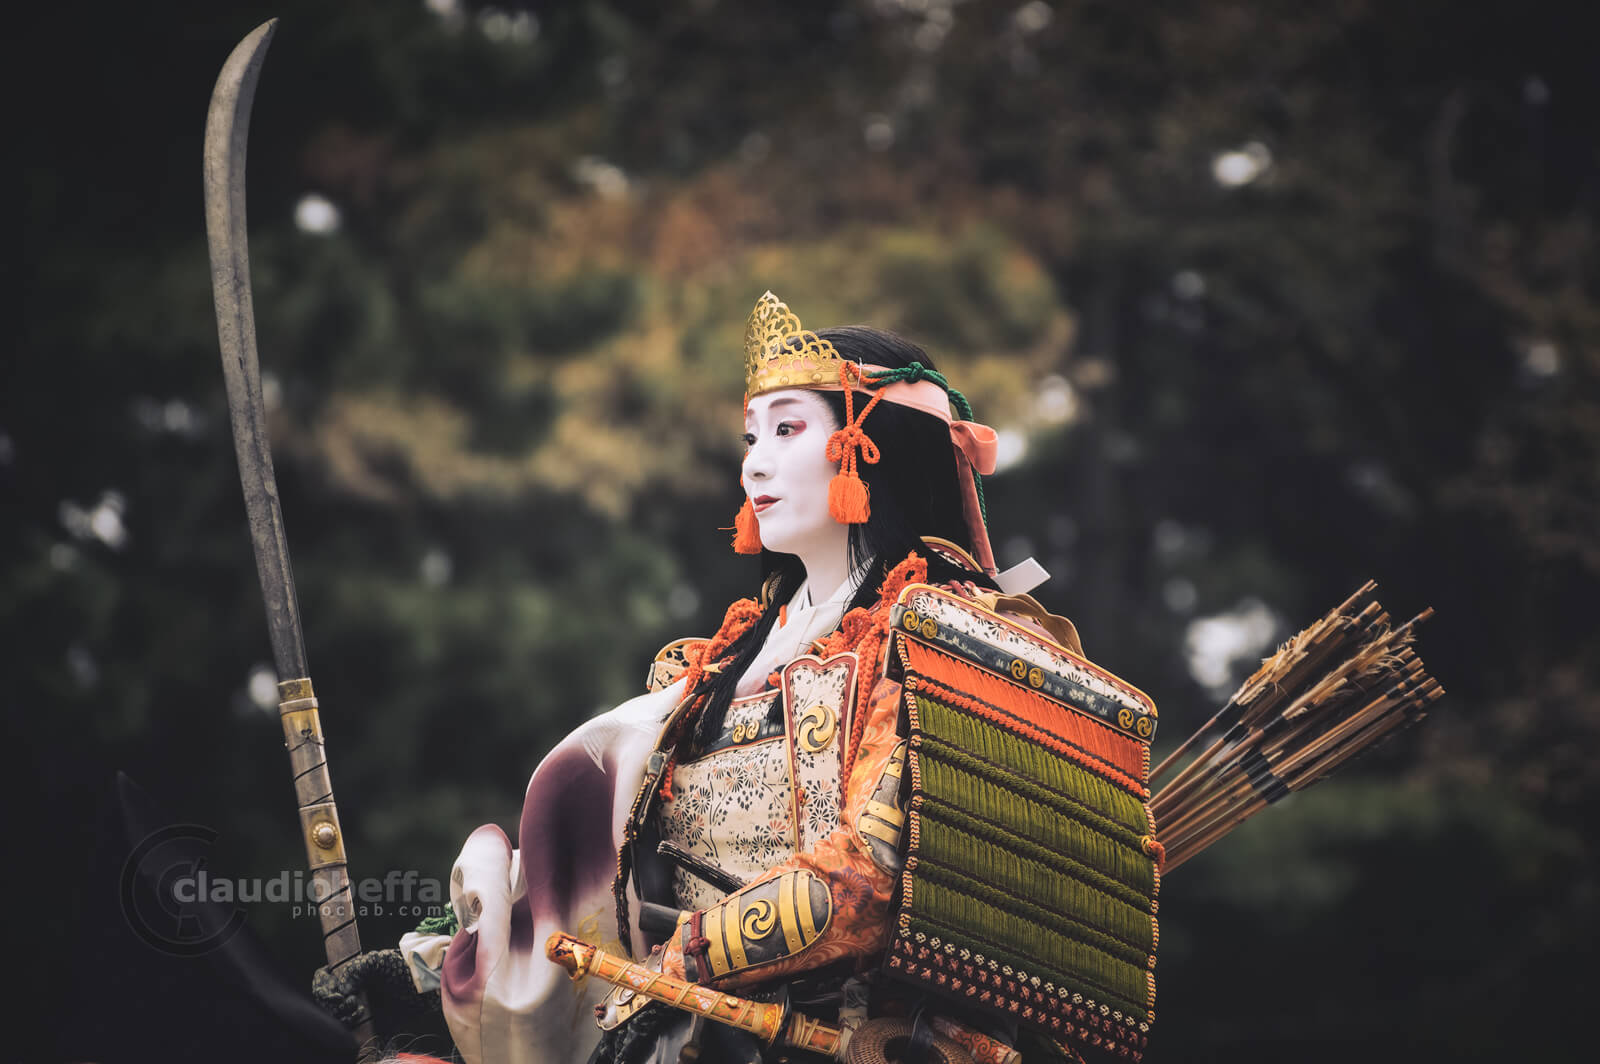 Tomoe Gozen lady samurai warrior. Yoroi, Armor, Kabuto, Helmet, Naginata, Pole blade, Jidai Matsuri, Festival, Kyoto, Japan, History, Tradition, Travel.